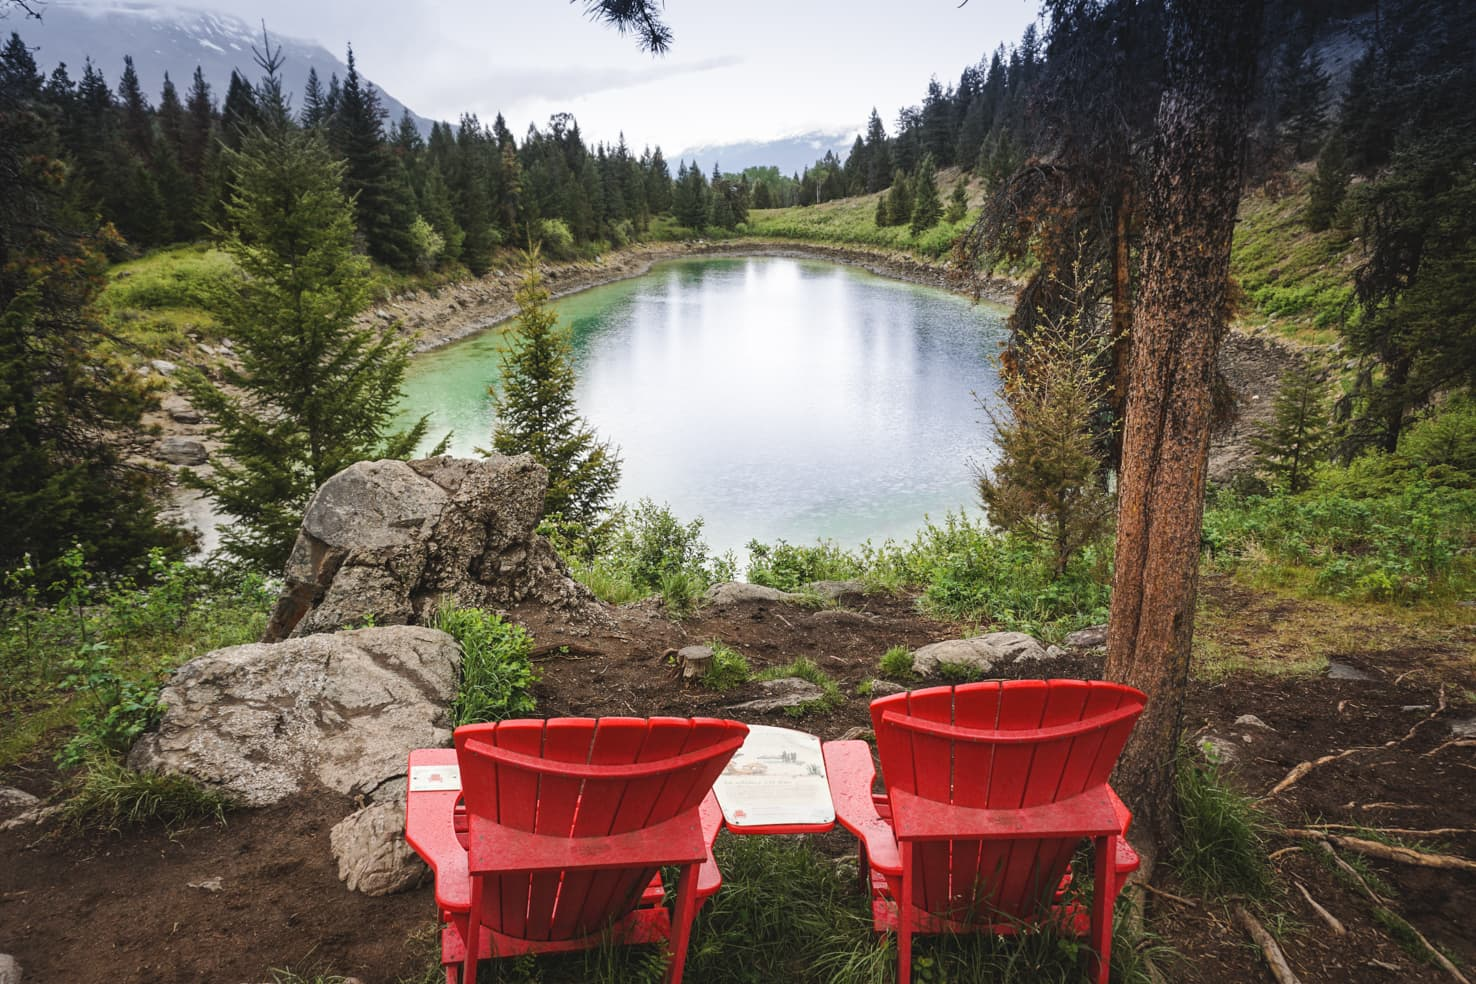 Things to do in Jasper National Park - 62 Take a photo in the iconic red chairs